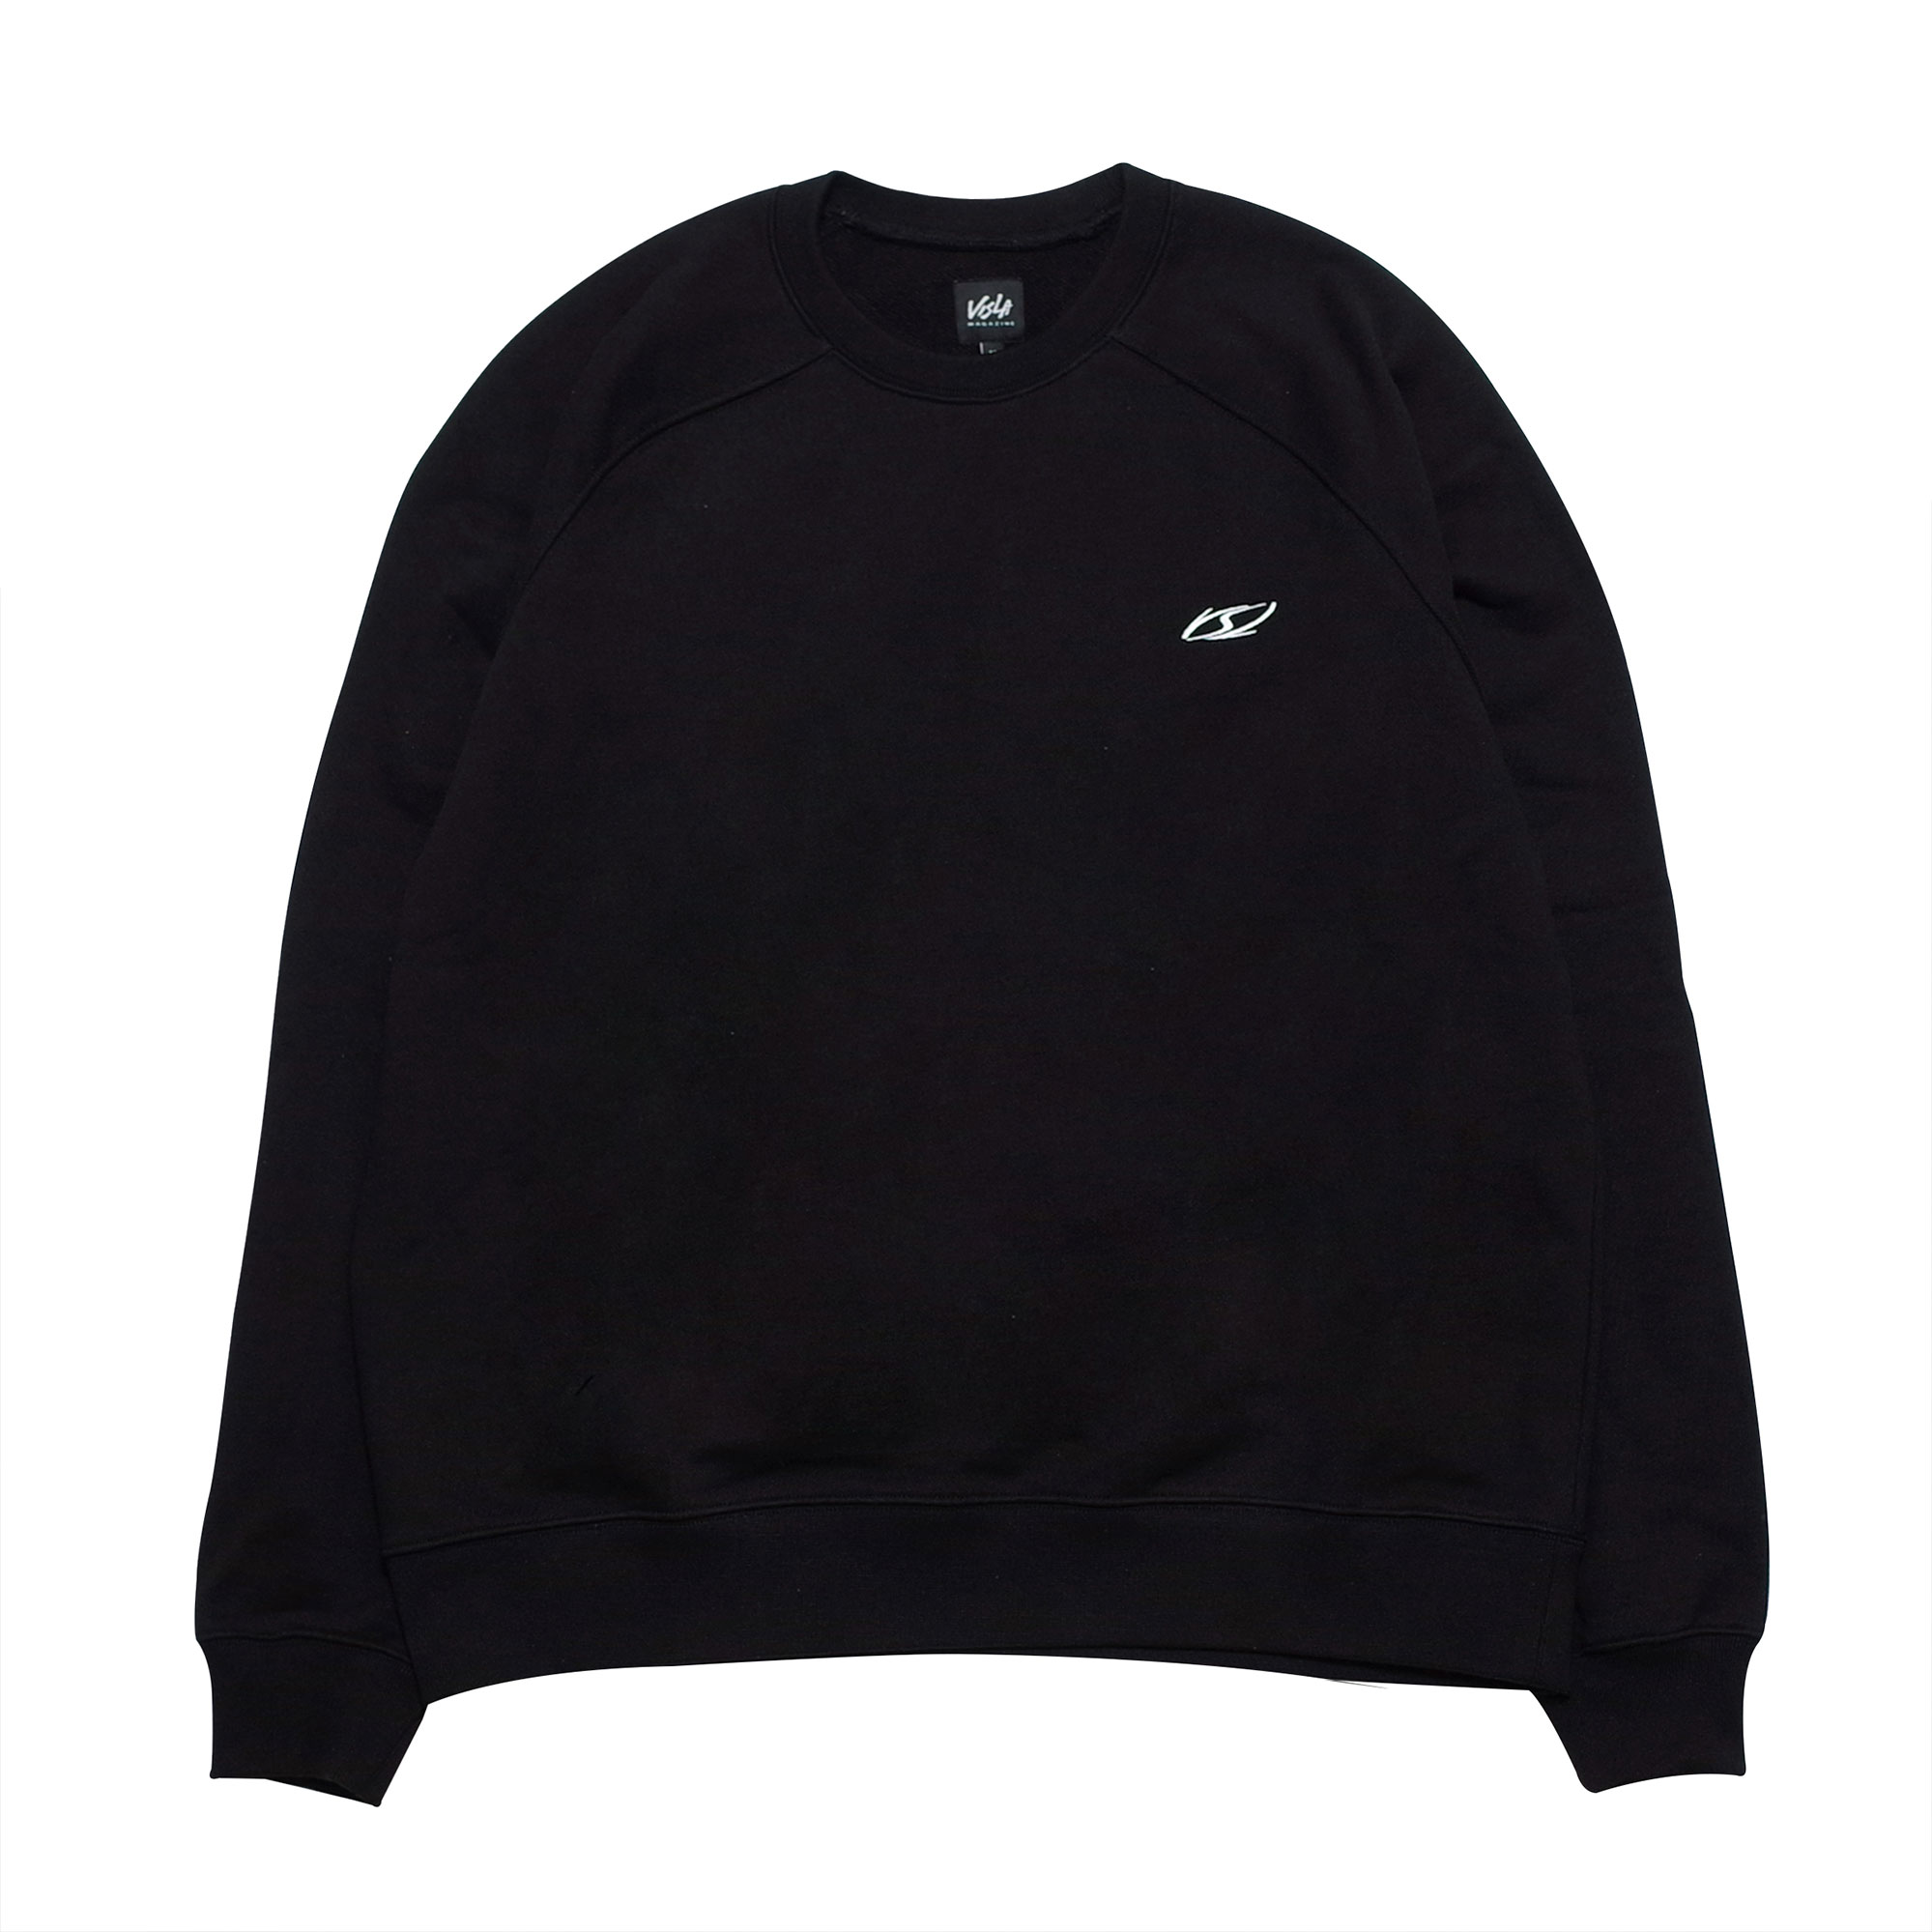 VSL SWEAT SHIRT - BLK